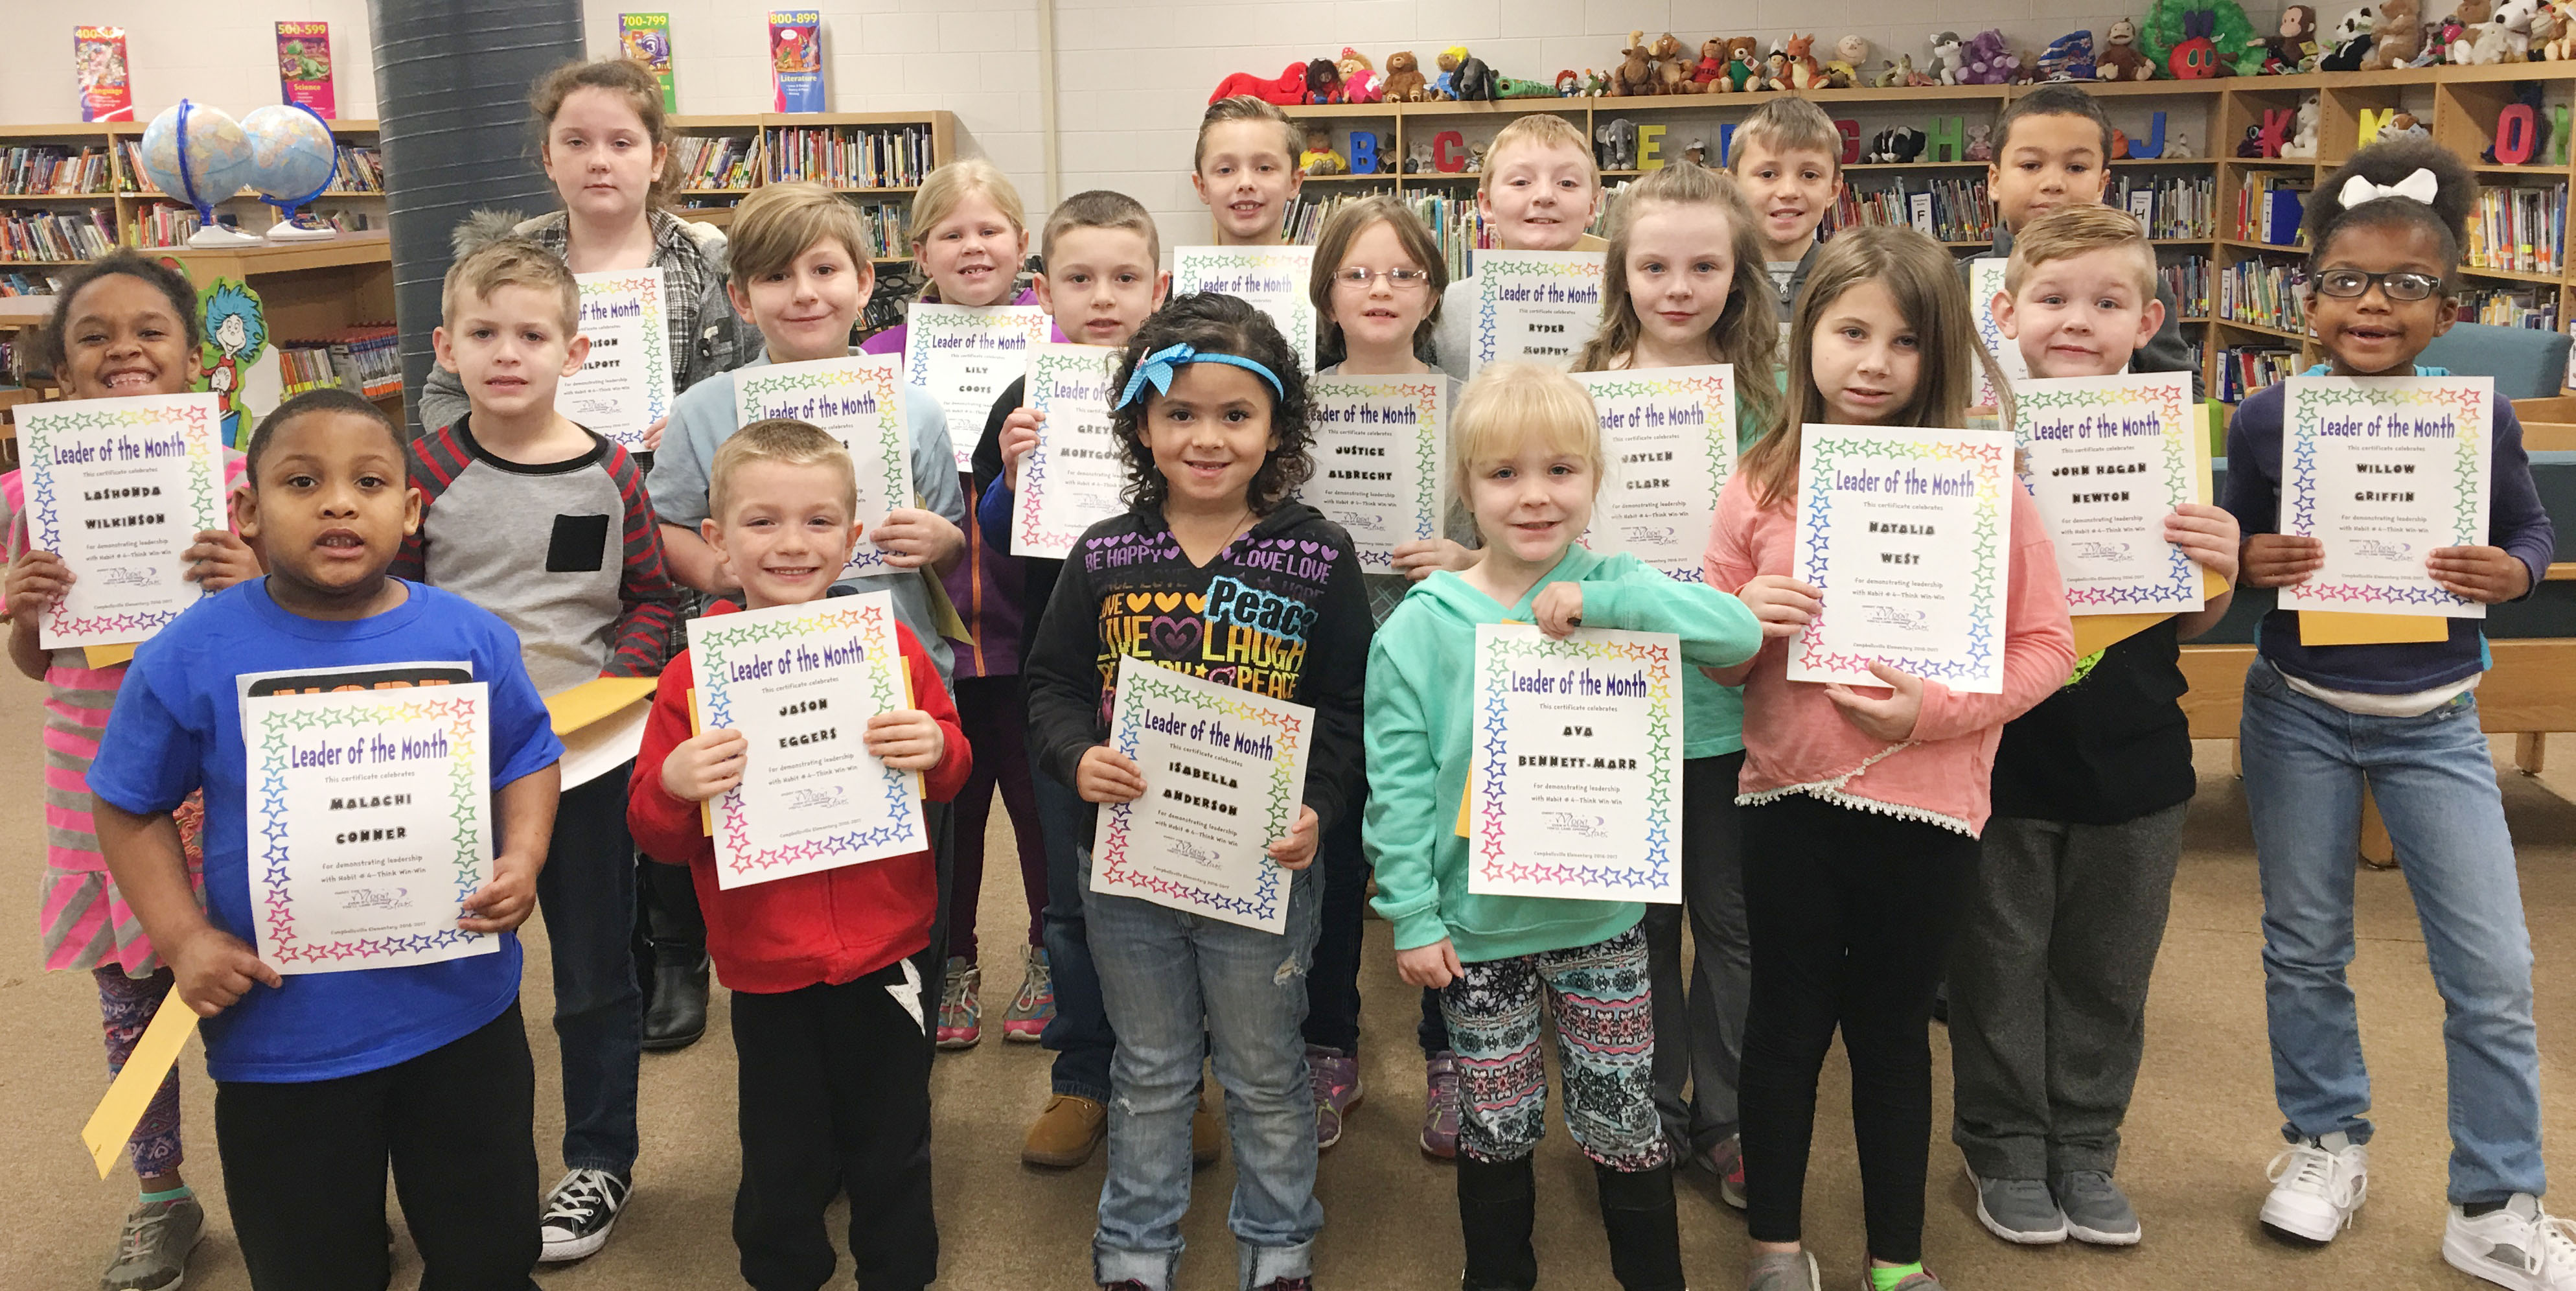 From left, front, are kindergarteners Malachi Conner, Jason Eggers, Isabella Anderson and Ava Bennett-Marr and second-grader Natalia West. Second row, second-grader Lashonda Wilkinson, first-graders Logan Weddle and Tommy Caswell, second-grader Greyson Montgomery, first-grader Justice Albrecht, third-grader Jaylen Clark, kindergartener John Hagan Newton and first-grader Willow Griffin. Back, third-grader Madison Philpott, second-grader Lily Coots, second-grader Guy Proctor and third-graders Ryder Murphy, Cameron Taylor and Zarek Stone. Absent from the photo is first-grader Frehley Whitlow.